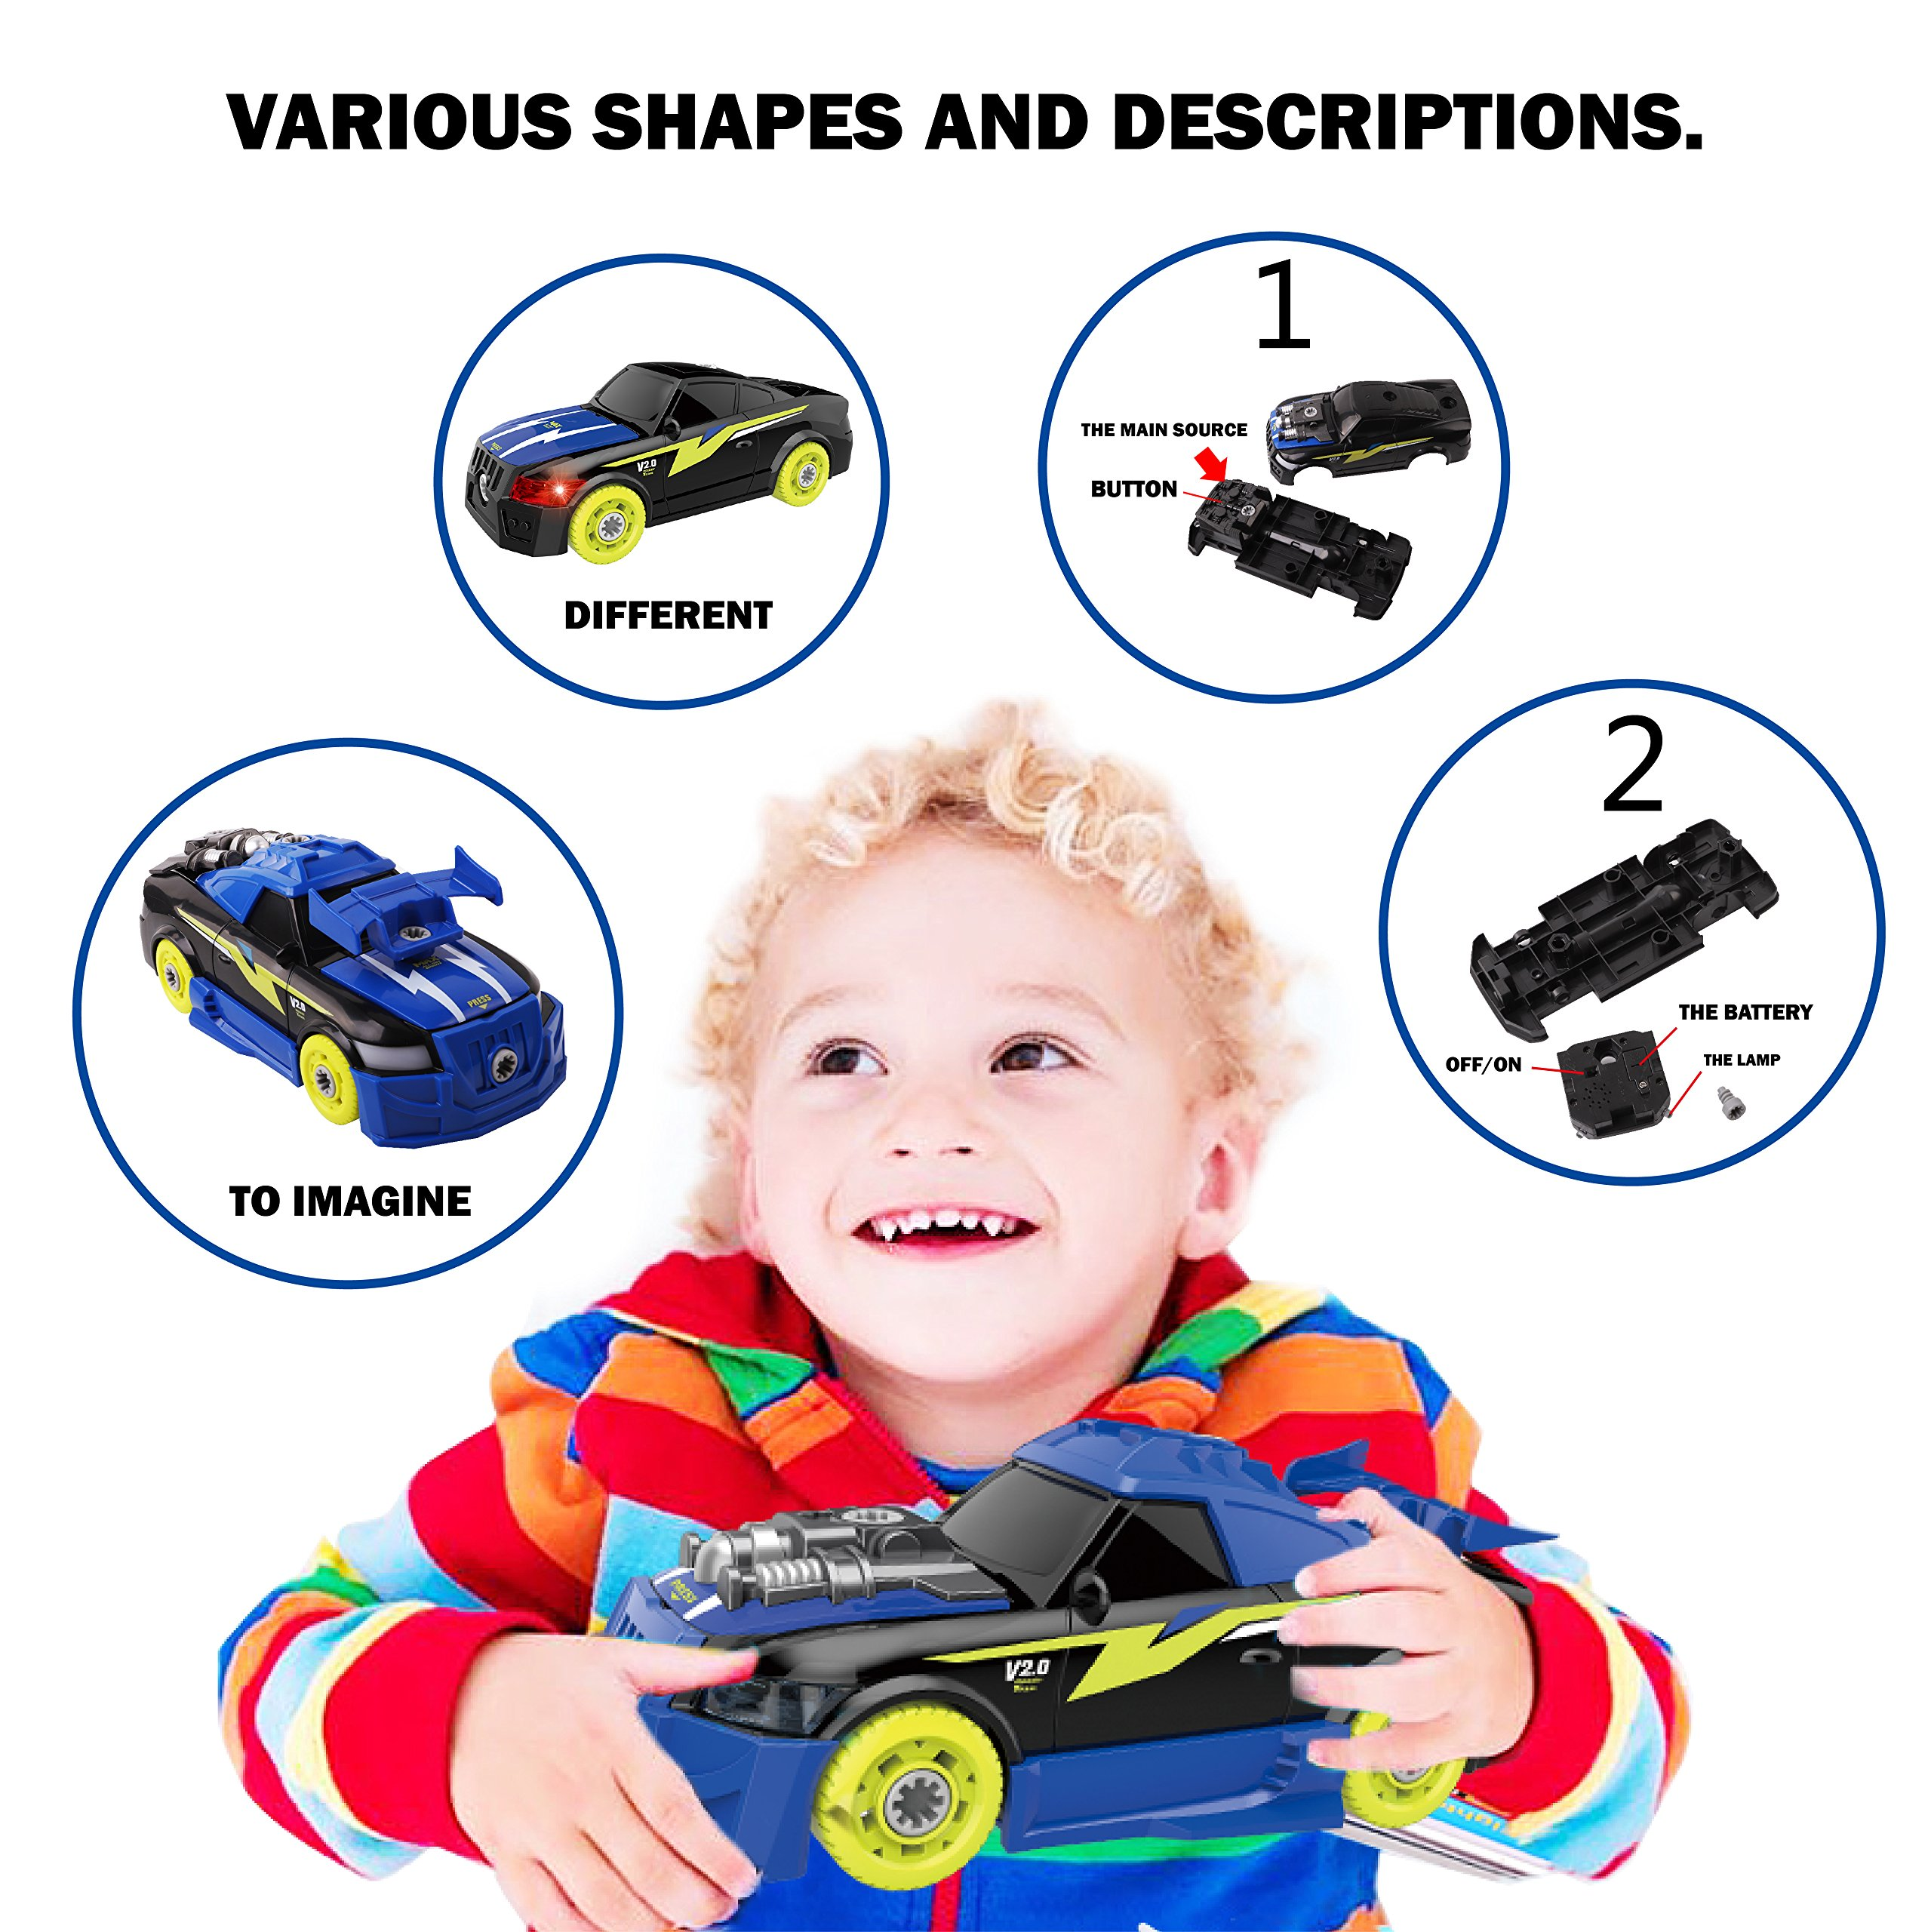 Maxxrace Take Apart Racing Car, STEM Toys 26 Pieces Assembly Car Toys with Drill Tool, Lights and Sounds, Gifts for Kids Aged 3+ by Maxxrace (Image #2)